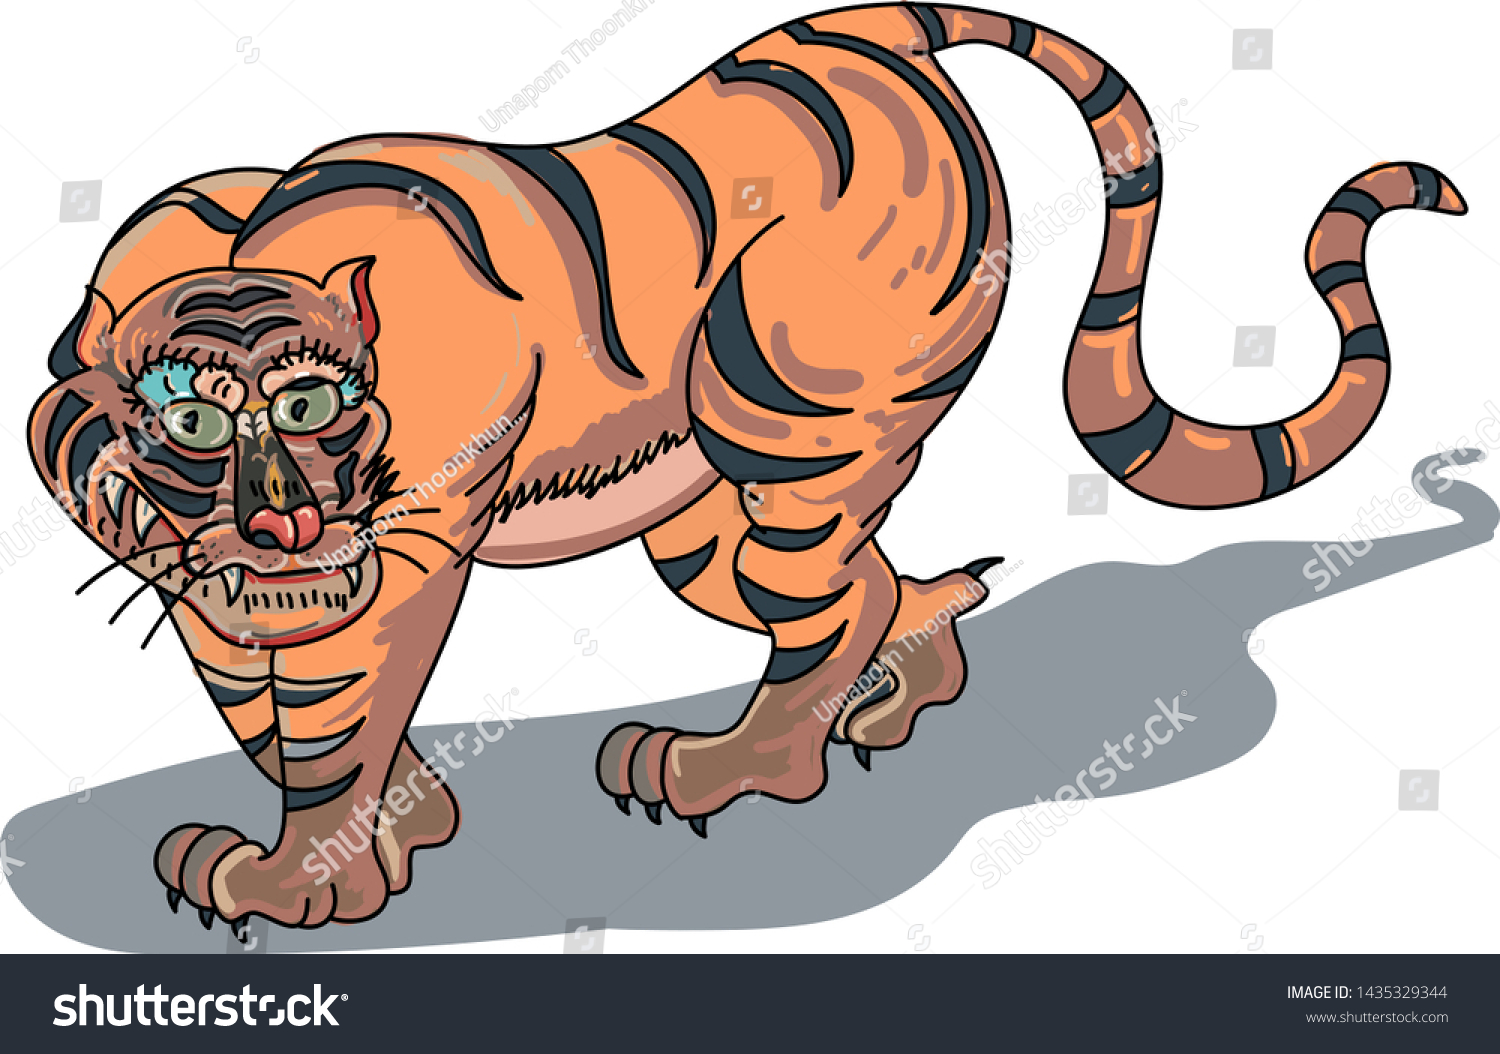 Japanese Tiger On Backgroundtraditional Tiger Art Stock Vector Royalty Free 1435329344